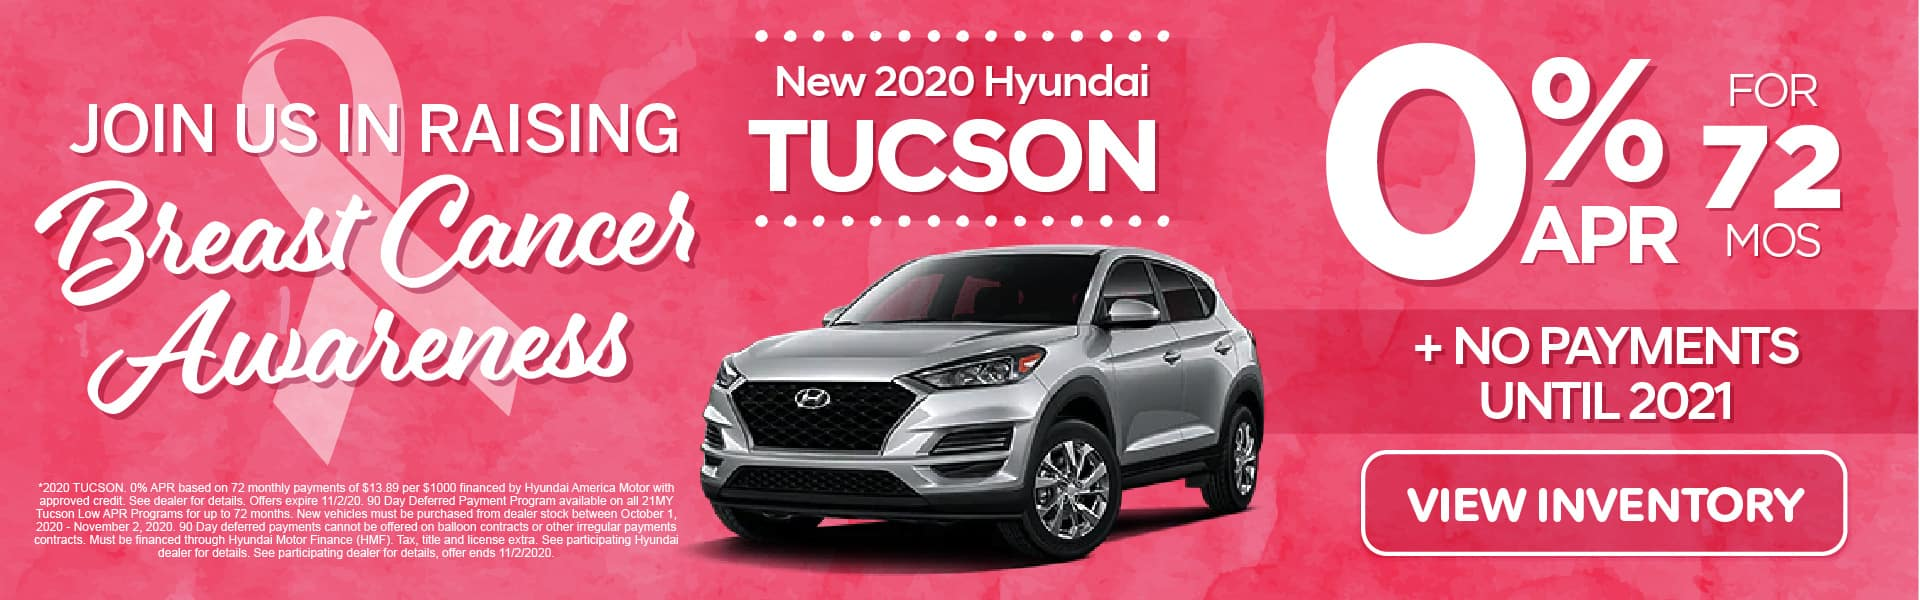 2020 Tucson 0% APR for 72 months